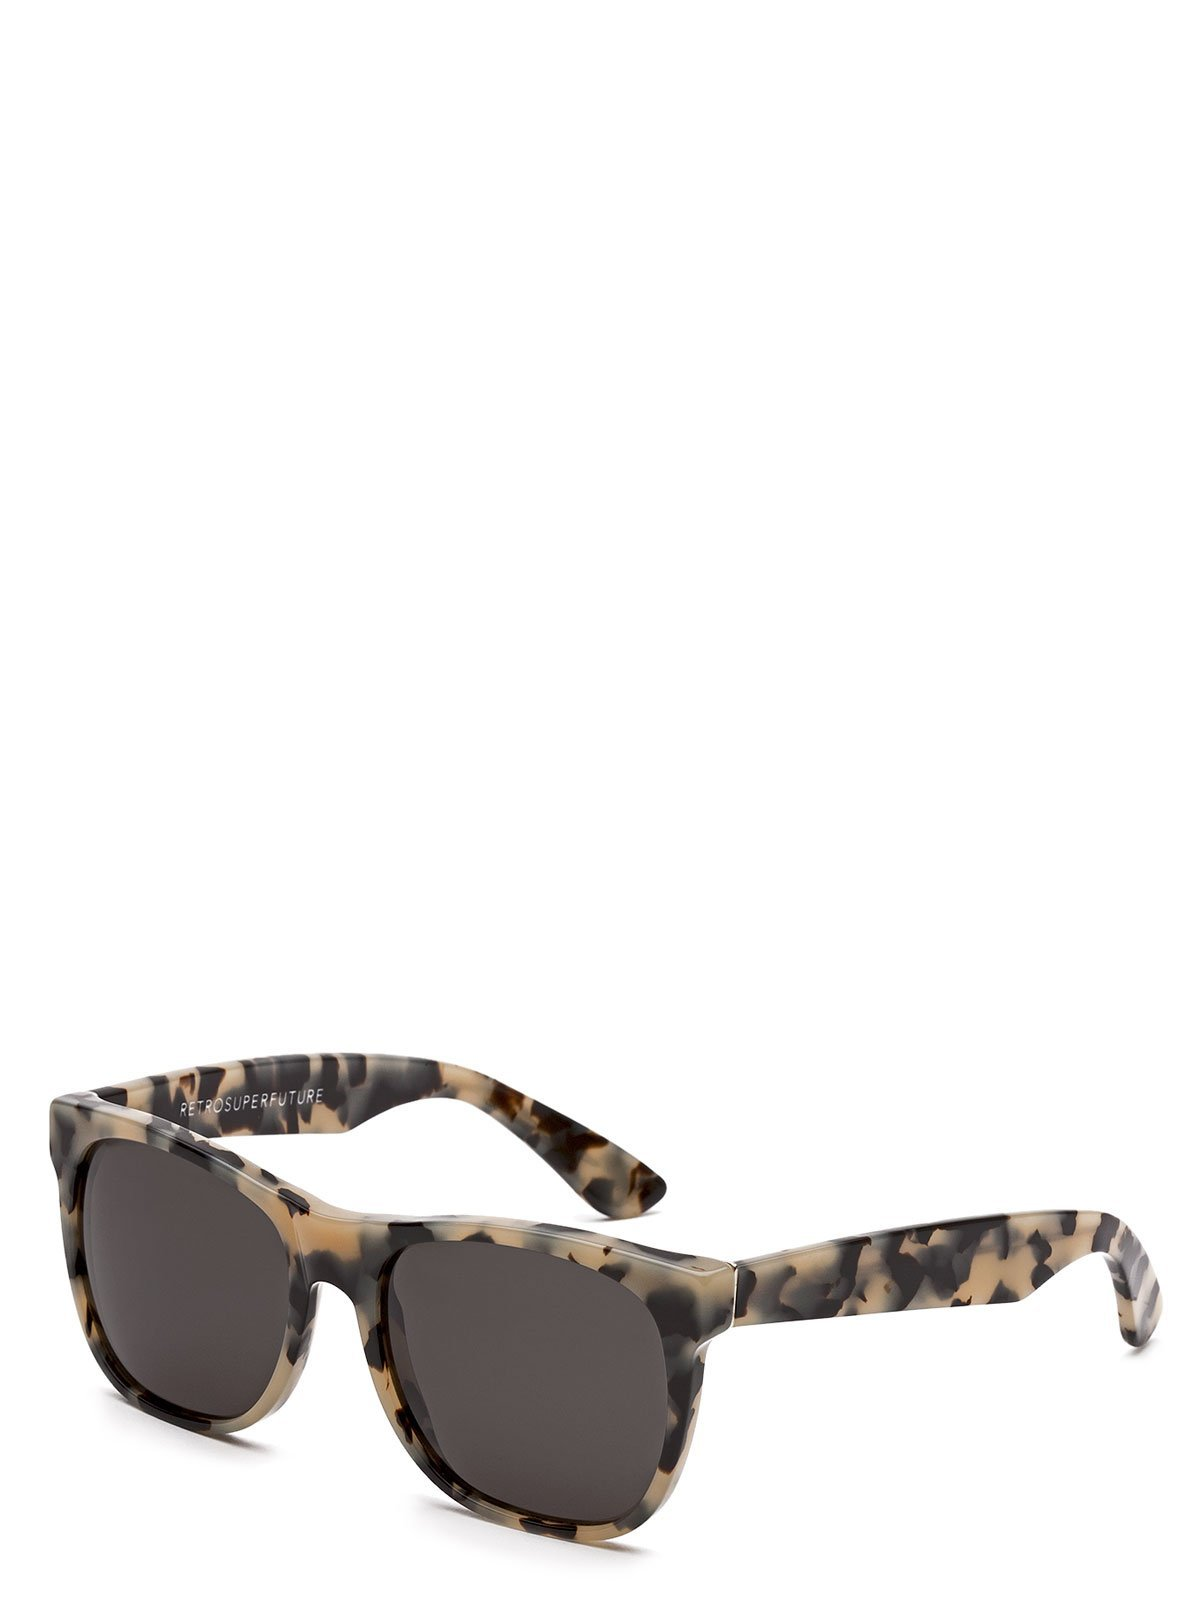 Super Sunglasses Basic Wayfarer One Size Multi